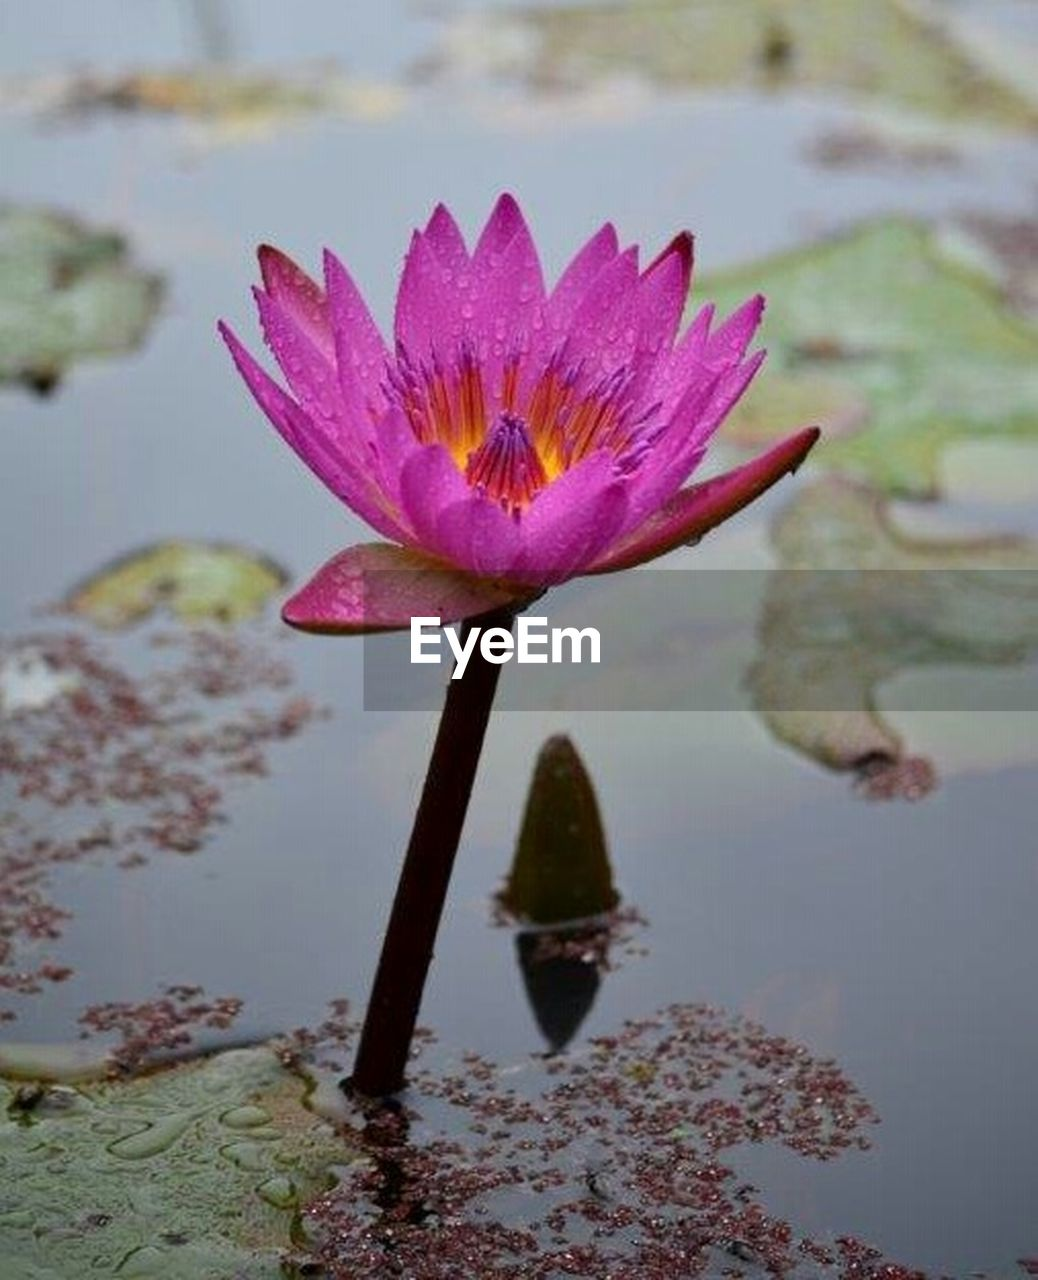 pond, water lily, flower, no people, floating on water, leaf, nature, water, lotus water lily, outdoors, day, plant, flower head, close-up, beauty in nature, fragility, freshness